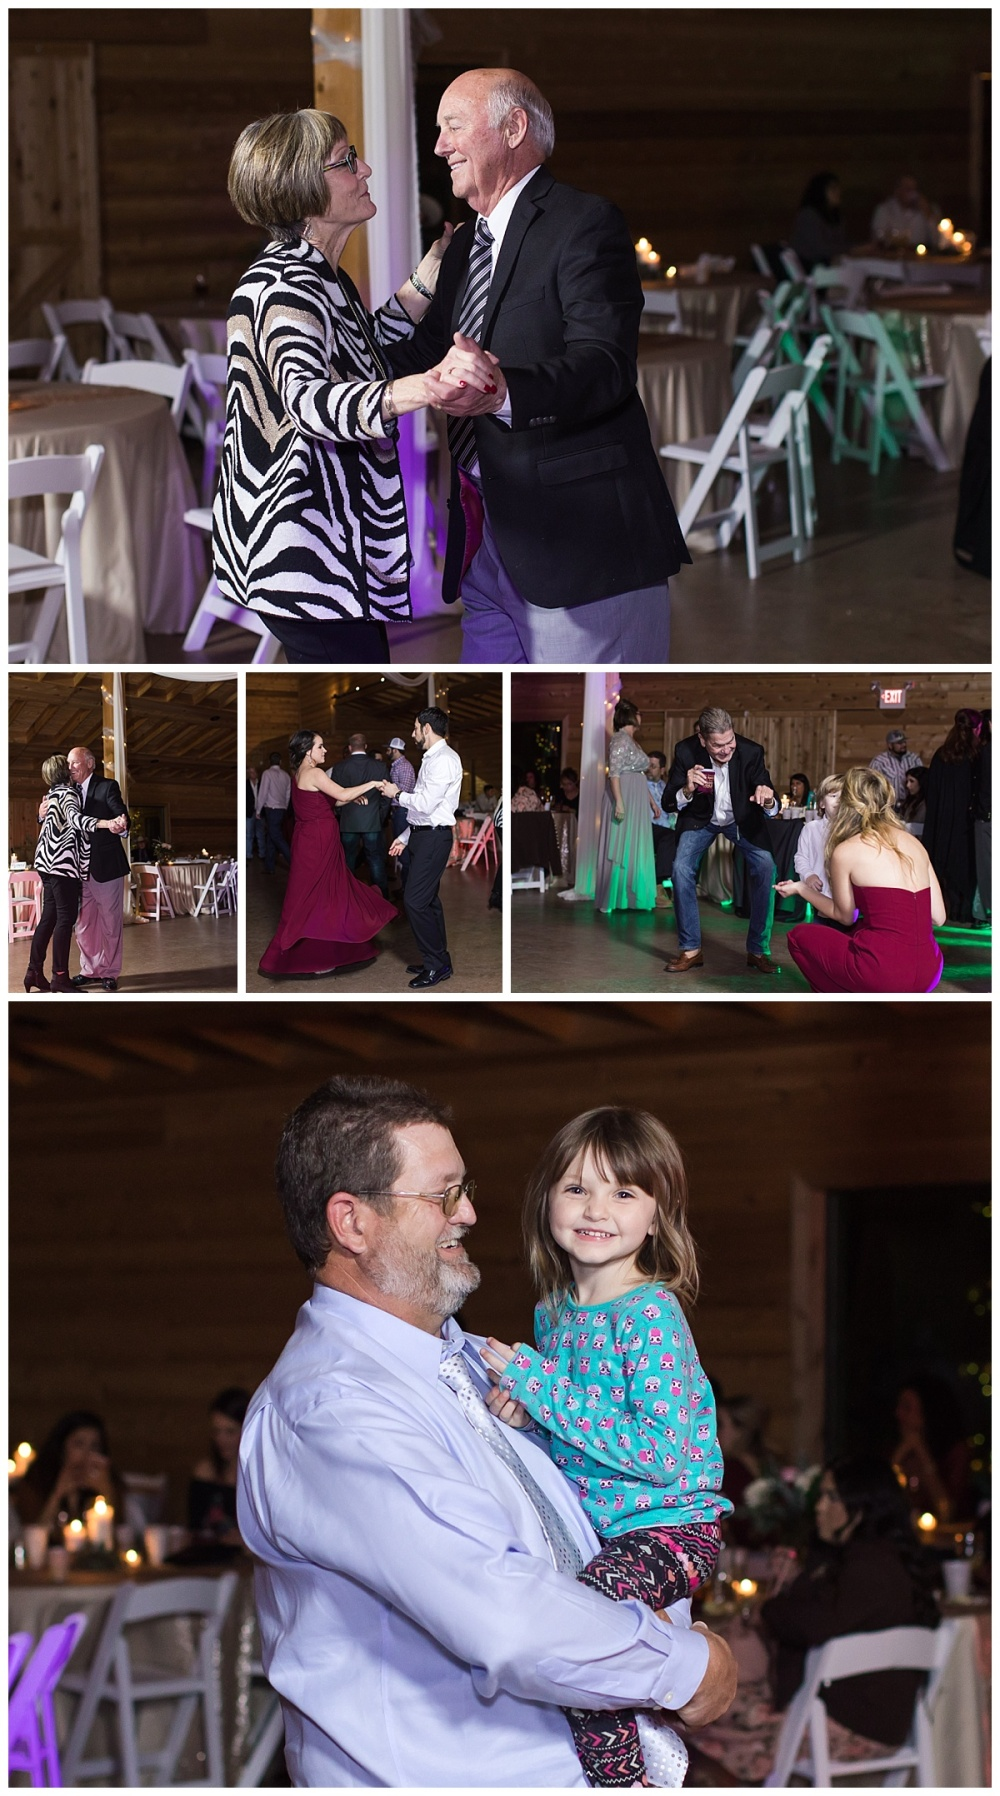 Carly-Barton-Photography-Geronimo-Oaks-Wedding-Venue-Texas-Hill-Country-Ronnie-Sarah_0122.jpg